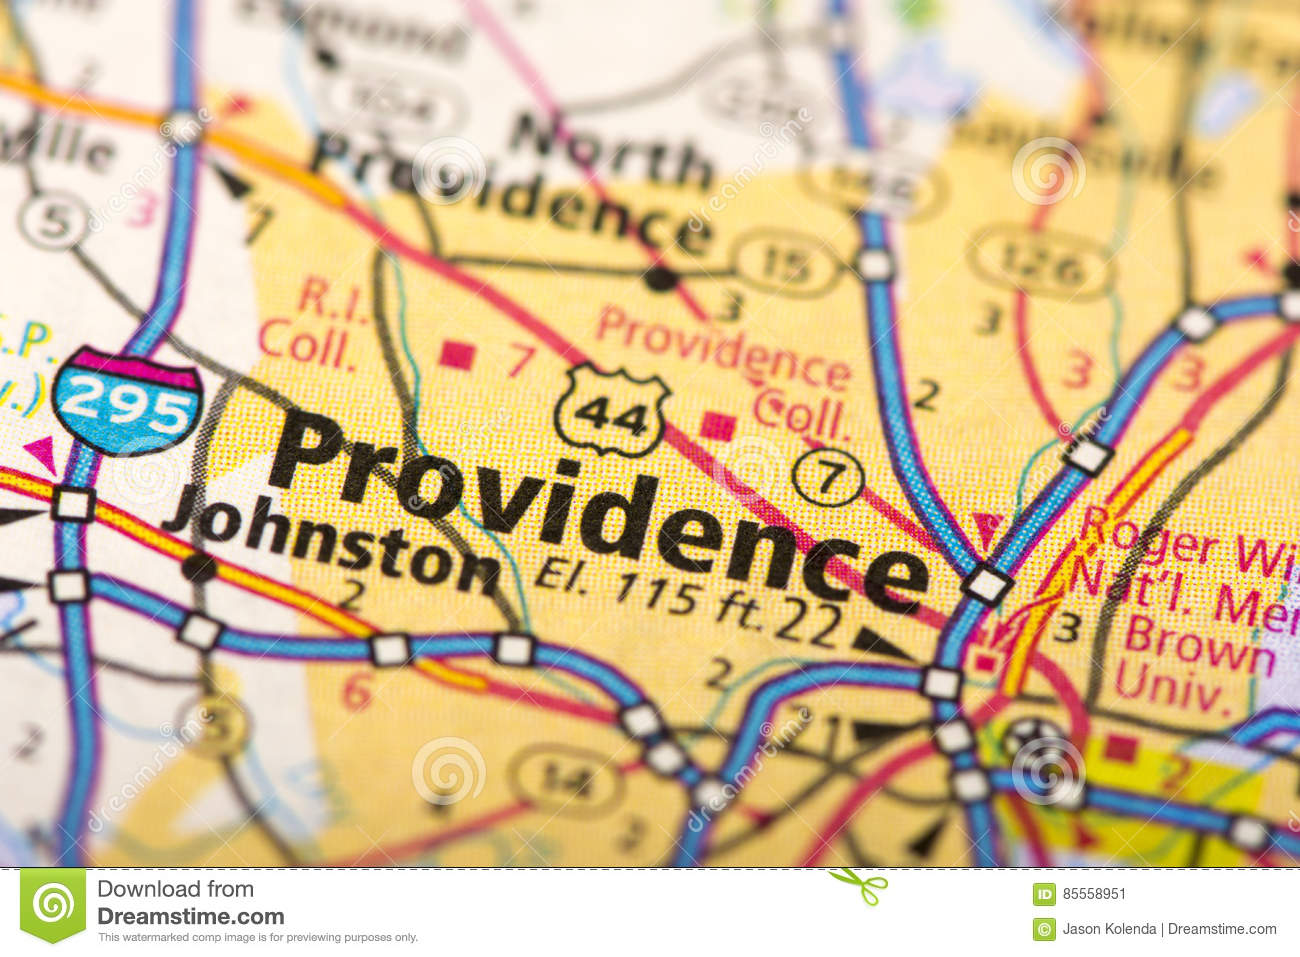 Providence, Rhode Island On Map Stock Image - Image of city, tourism ...